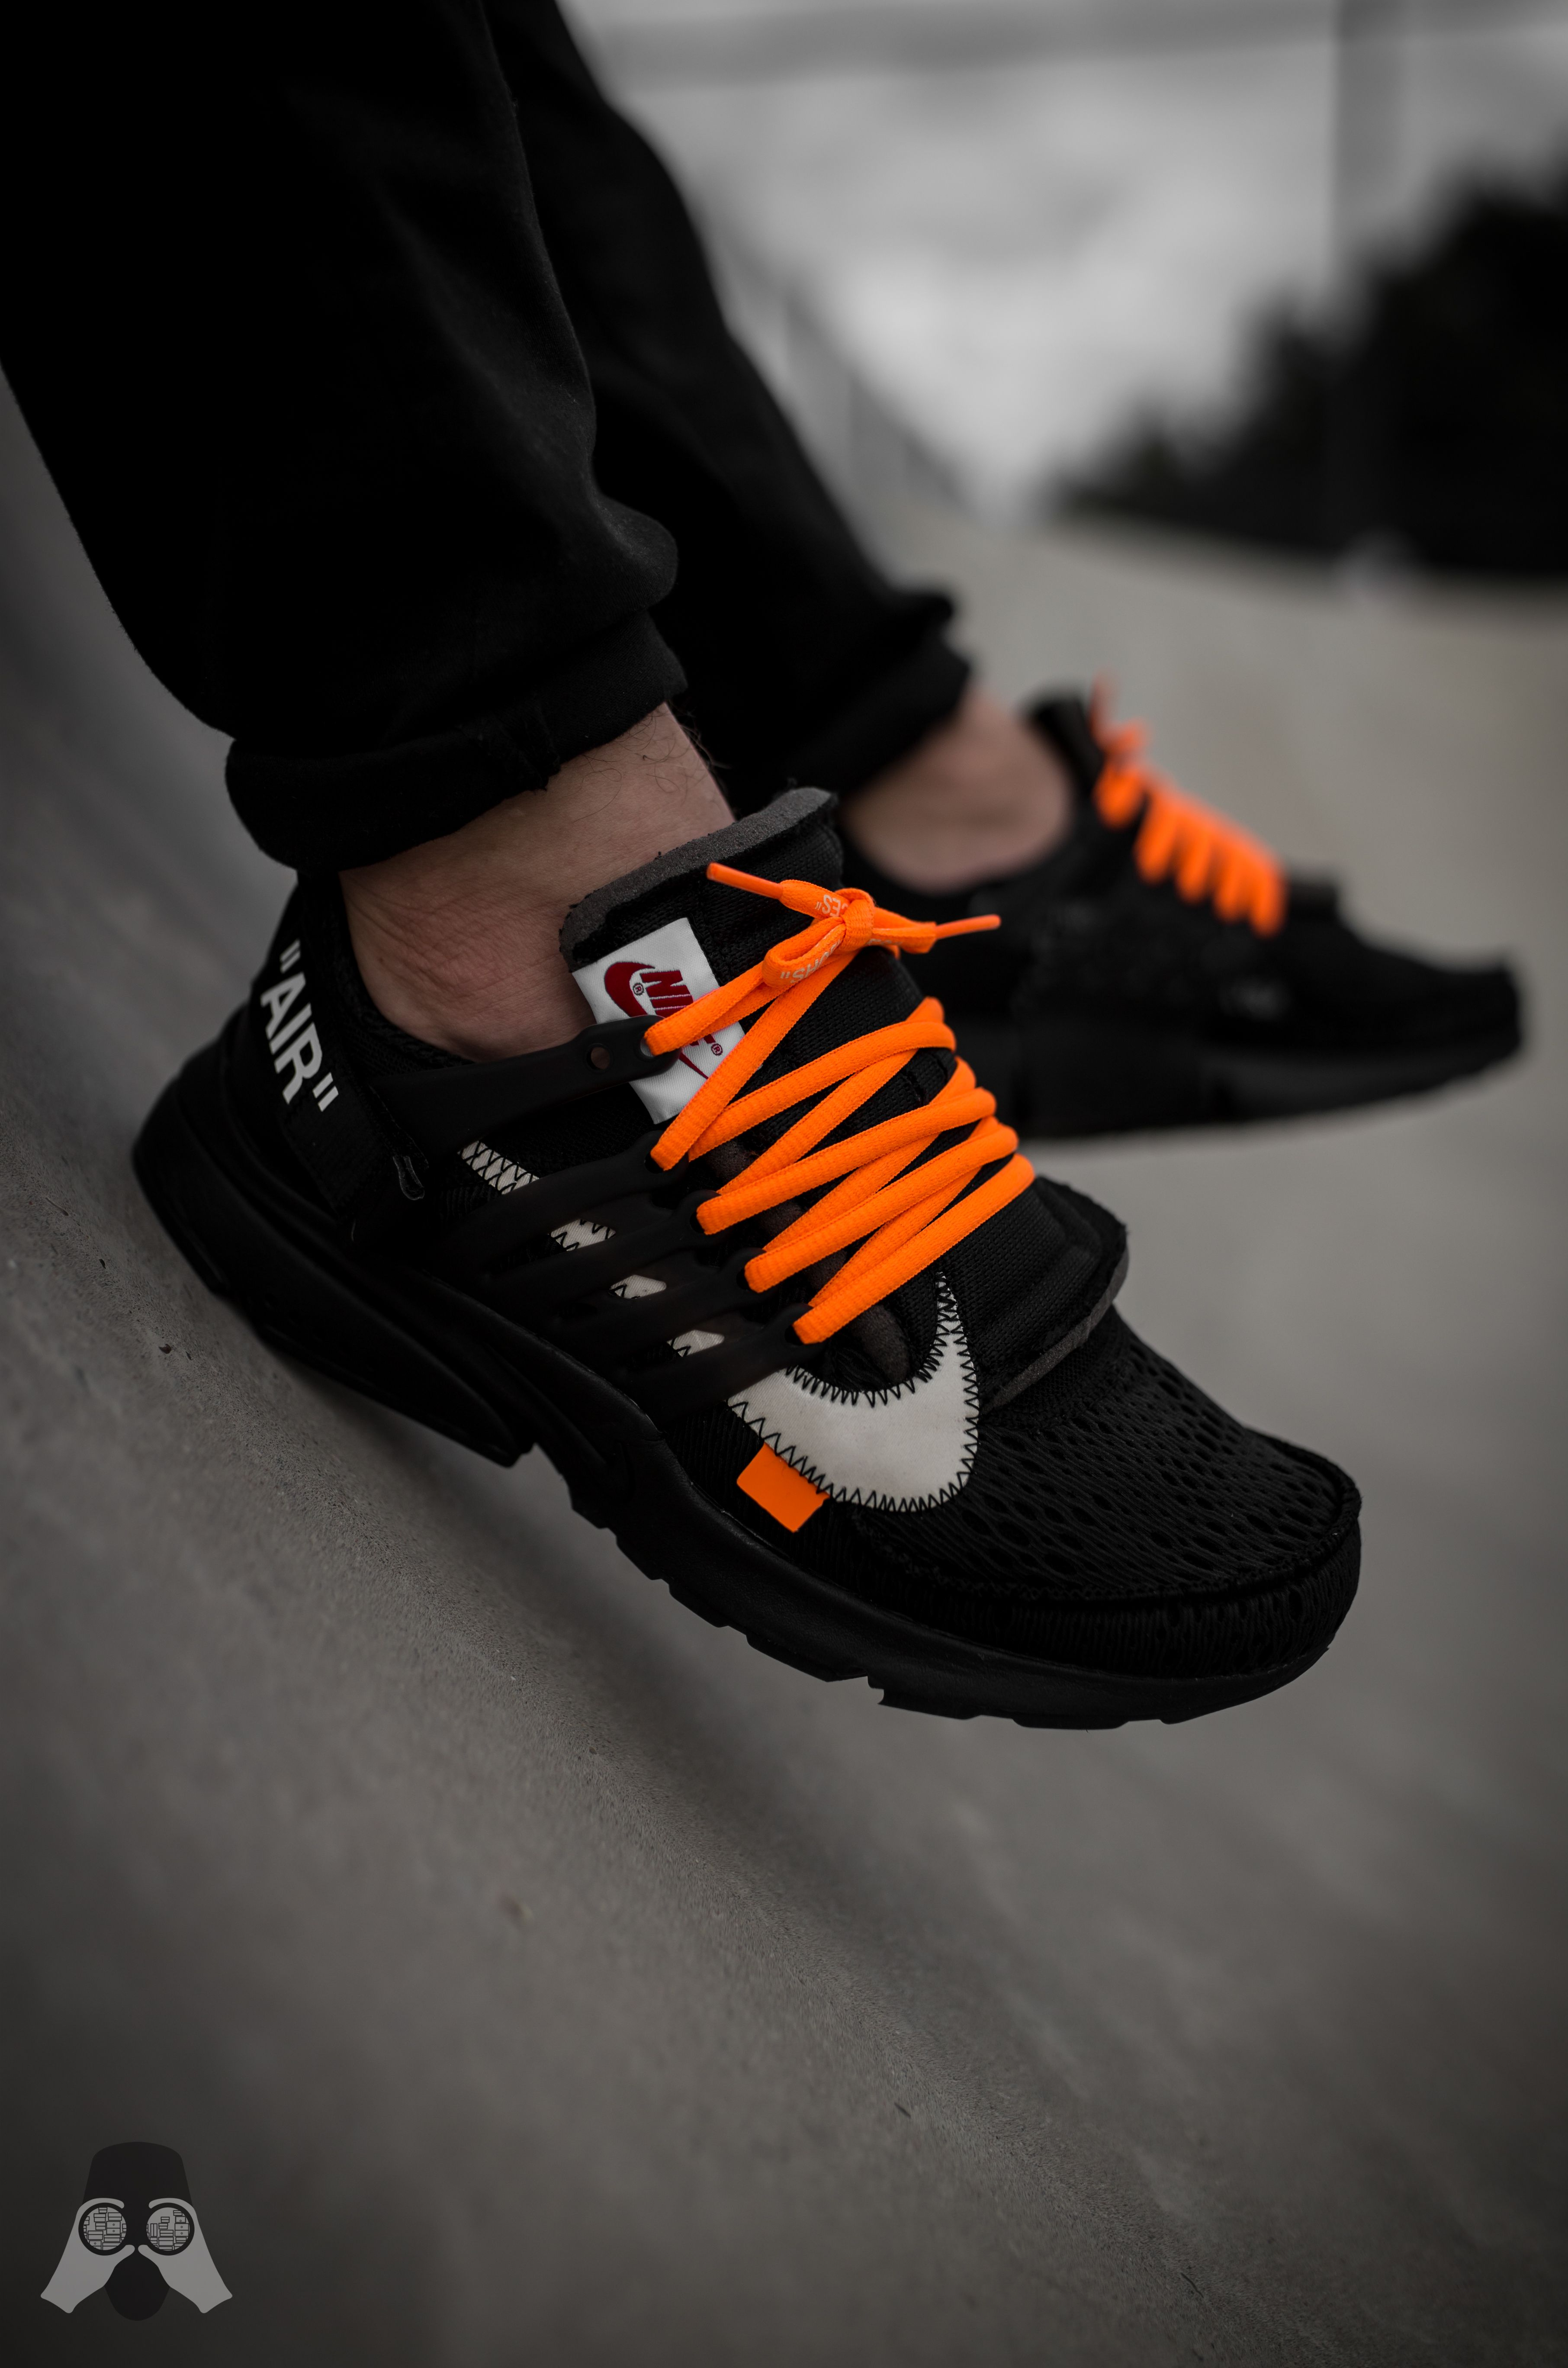 Review Off White X Nike Air Presto Aa3830 002 Nike Schuhe Herren Nike Schuhe Manner Turnschuhe Herren